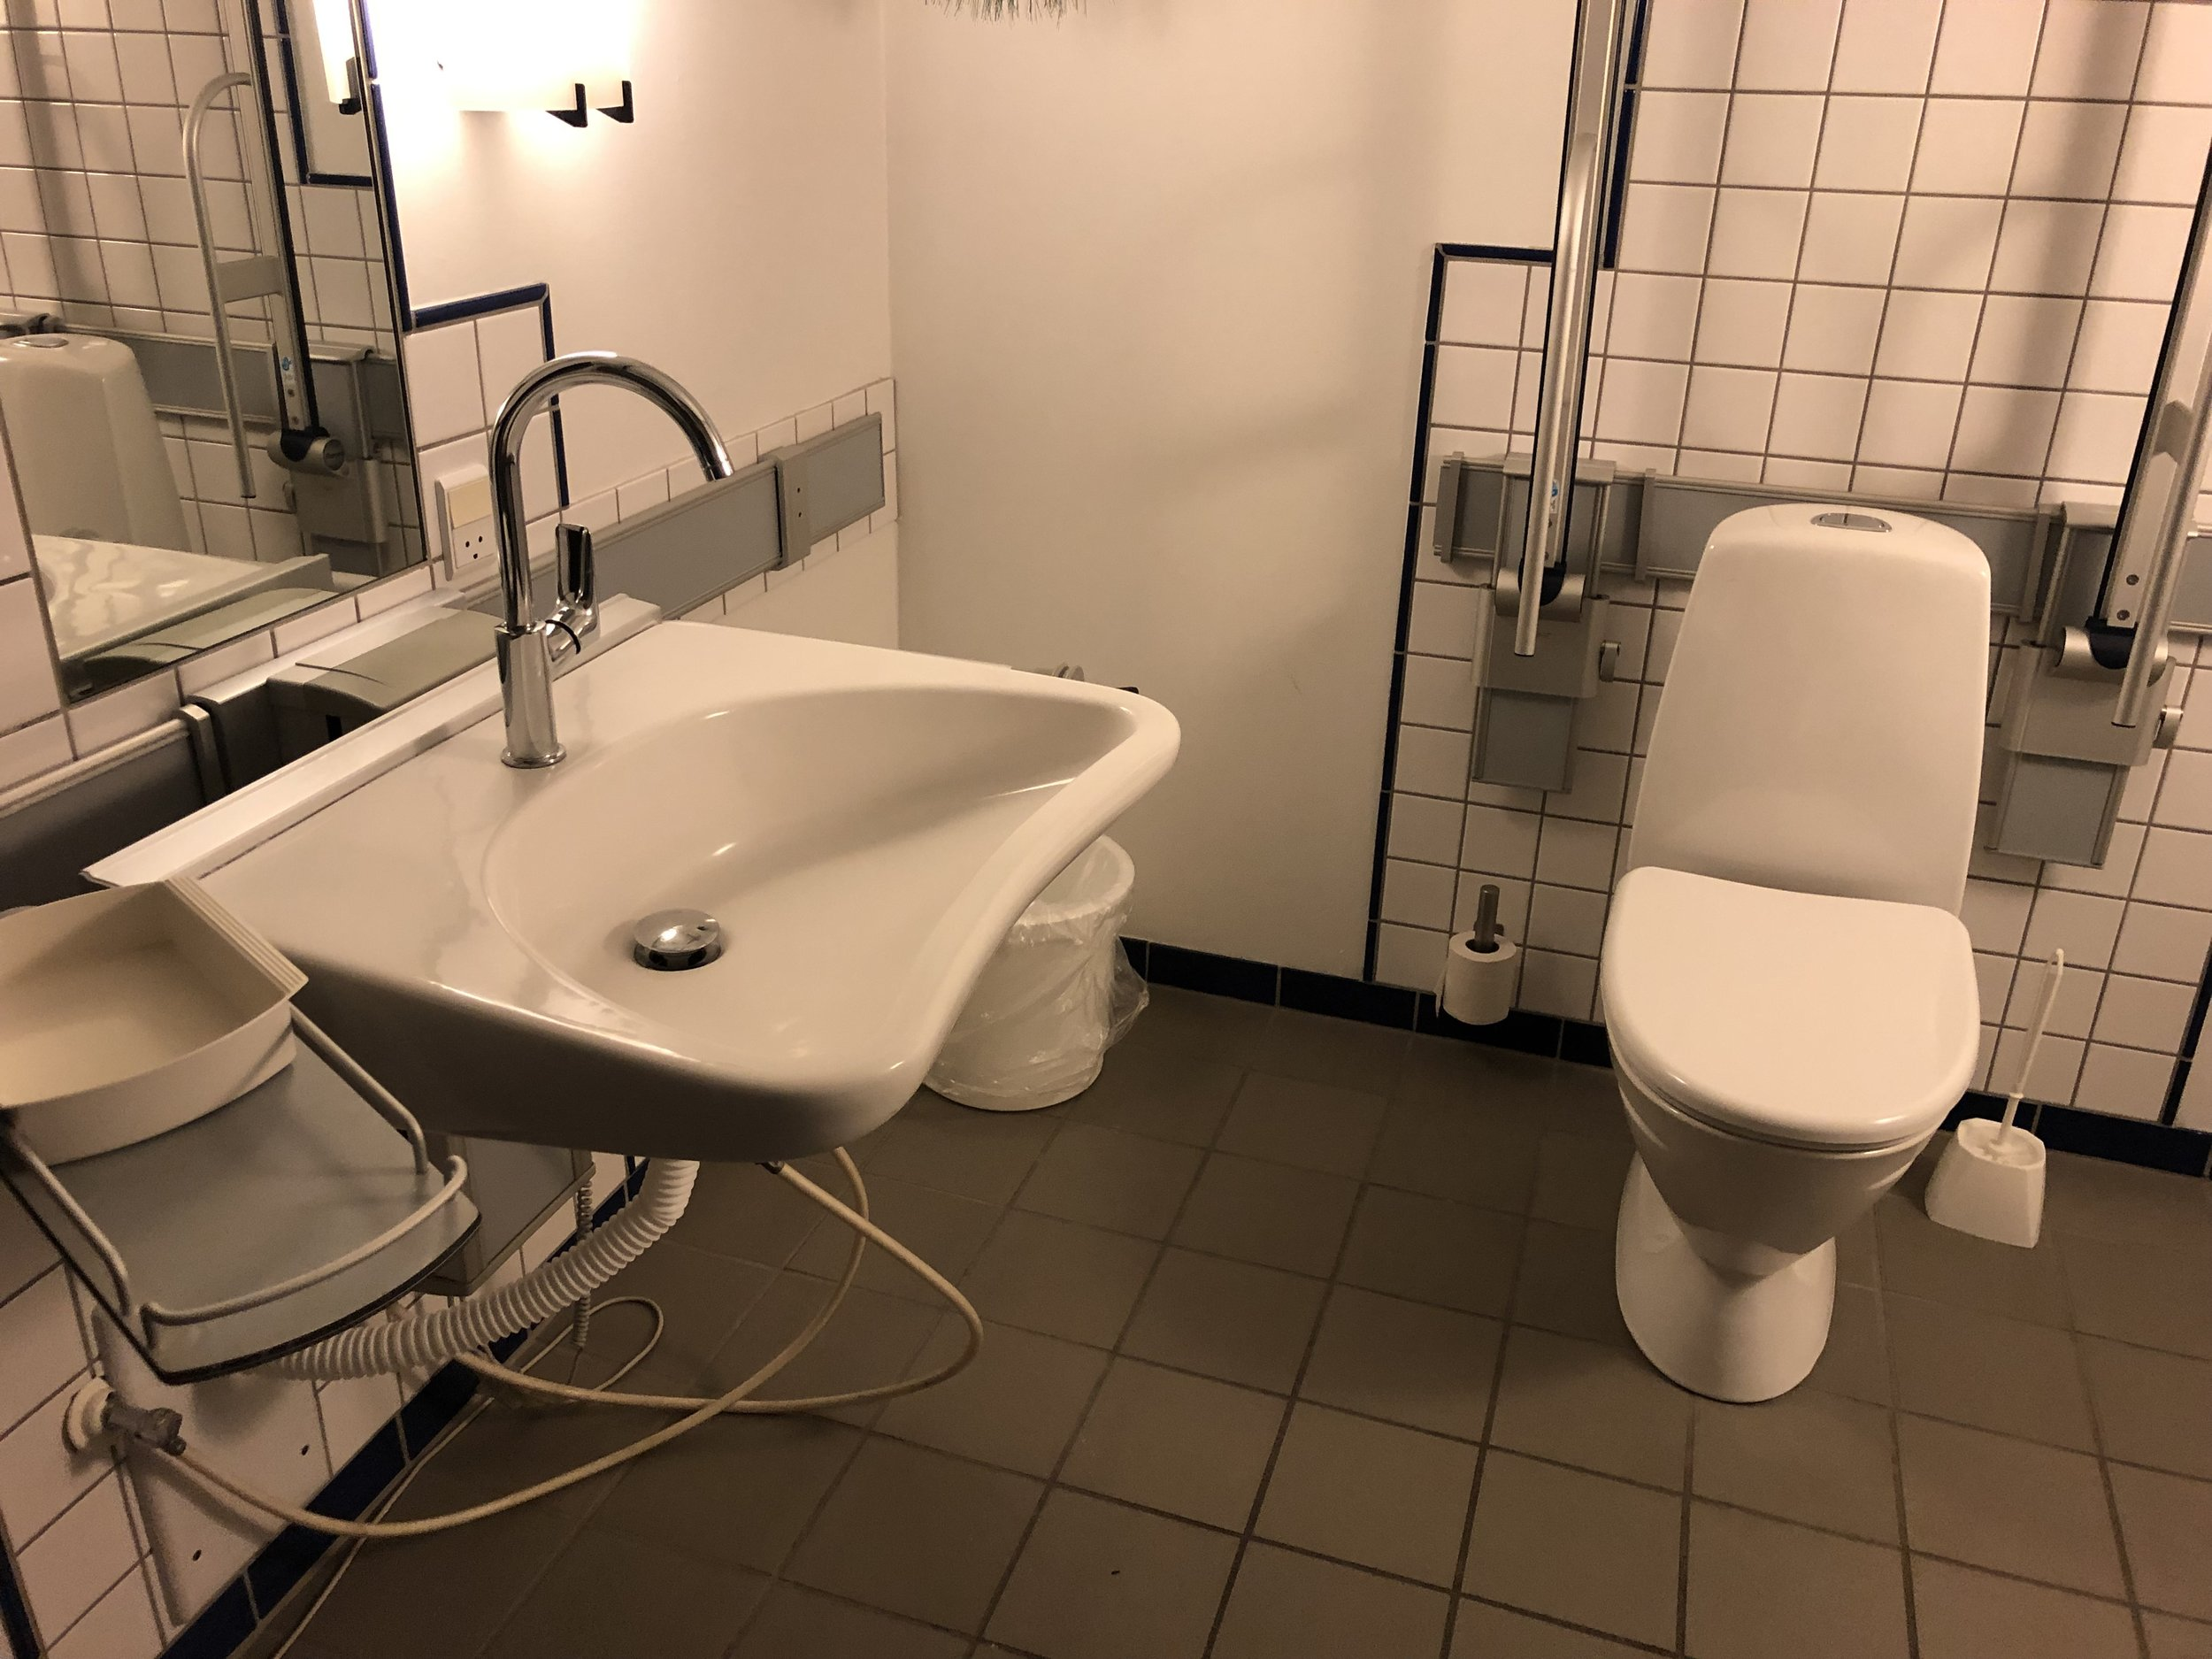 Accessibile toilet and sink